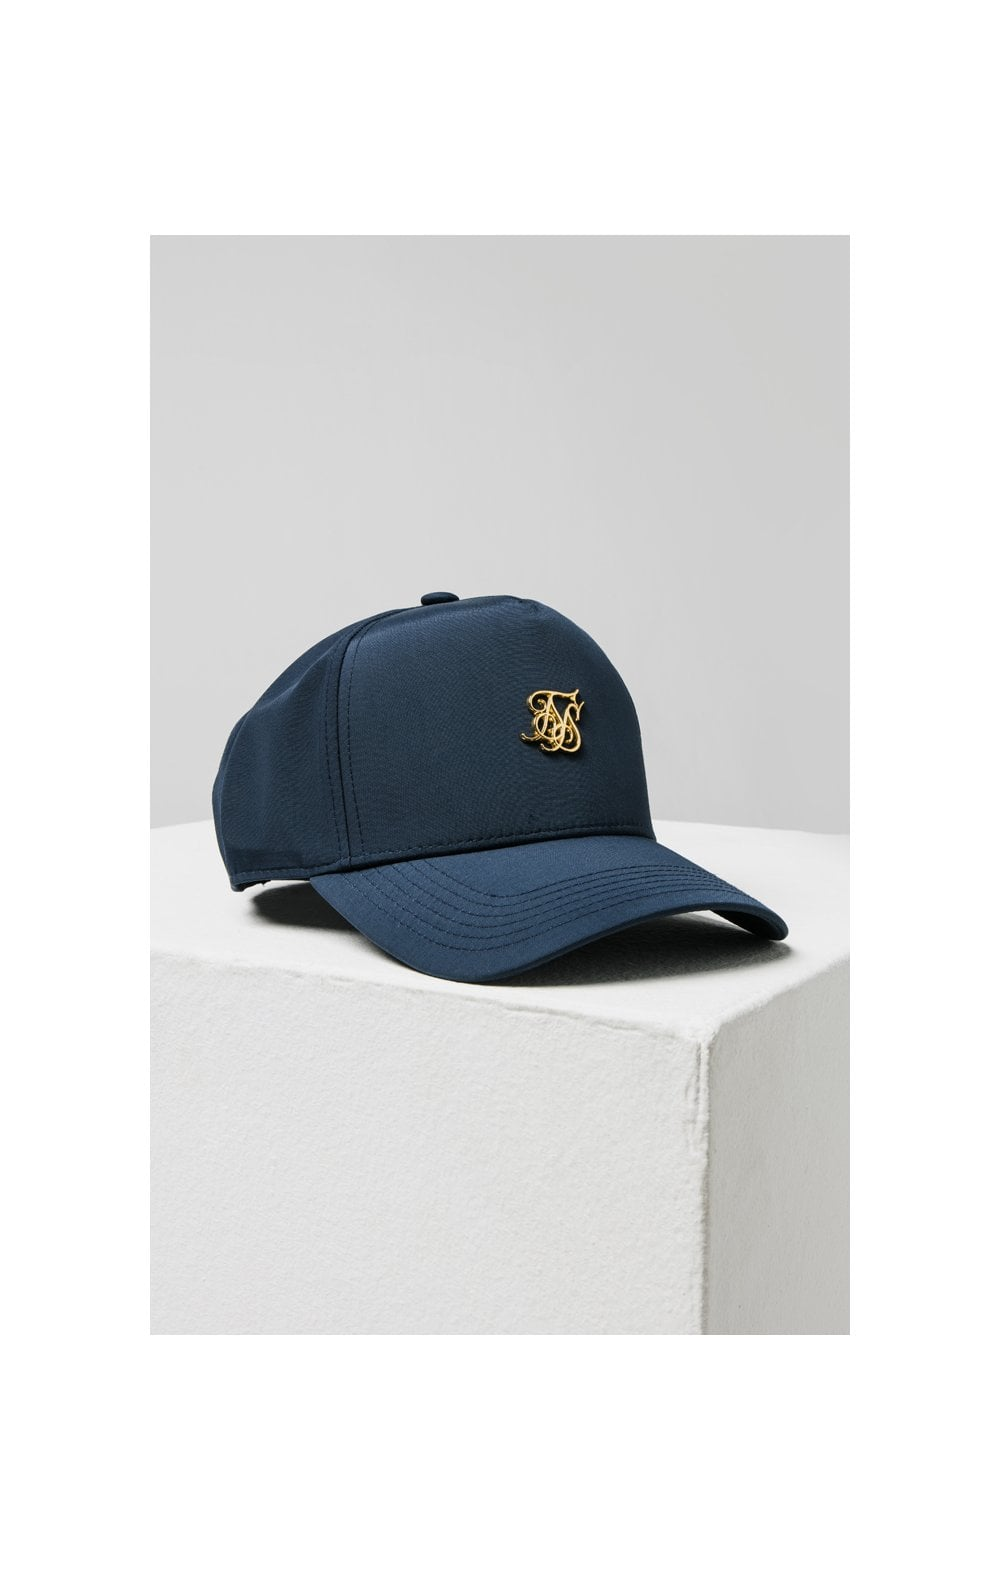 SikSilk Full Trucker - Navy (2)